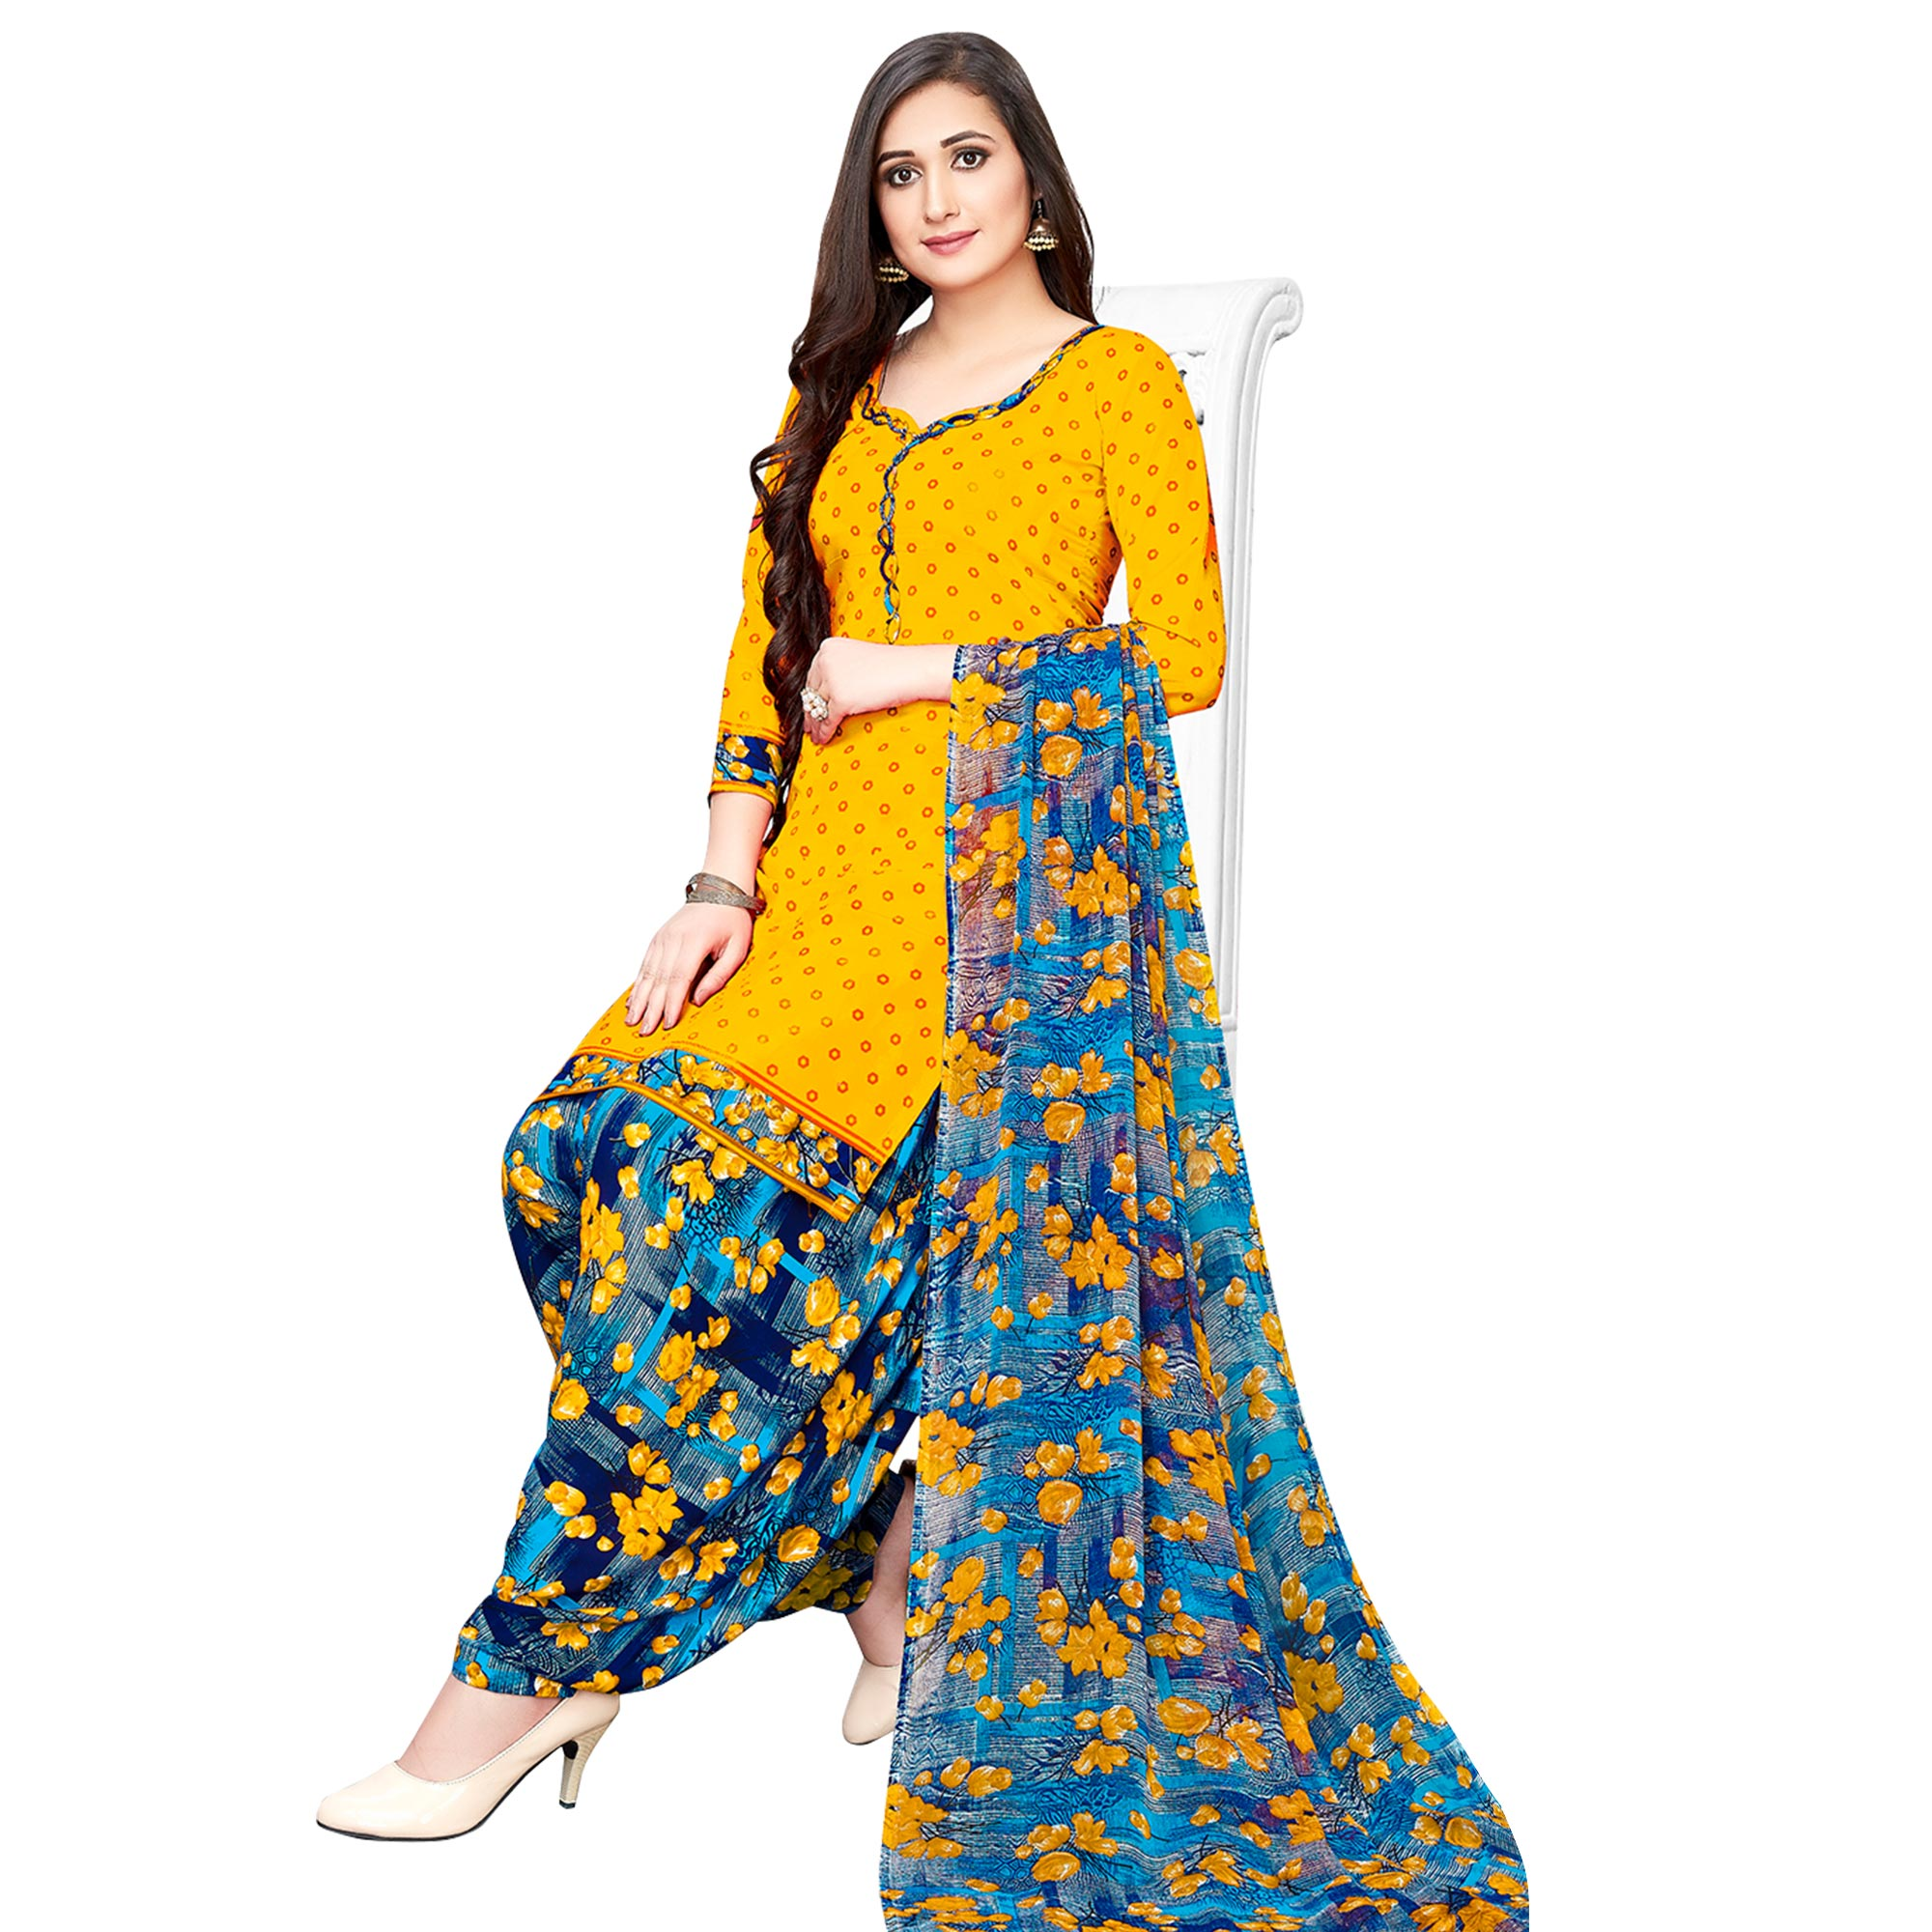 Unique Yellow-Brown Colored Casual Printed Crepe Patiala Suit - Pack of 2